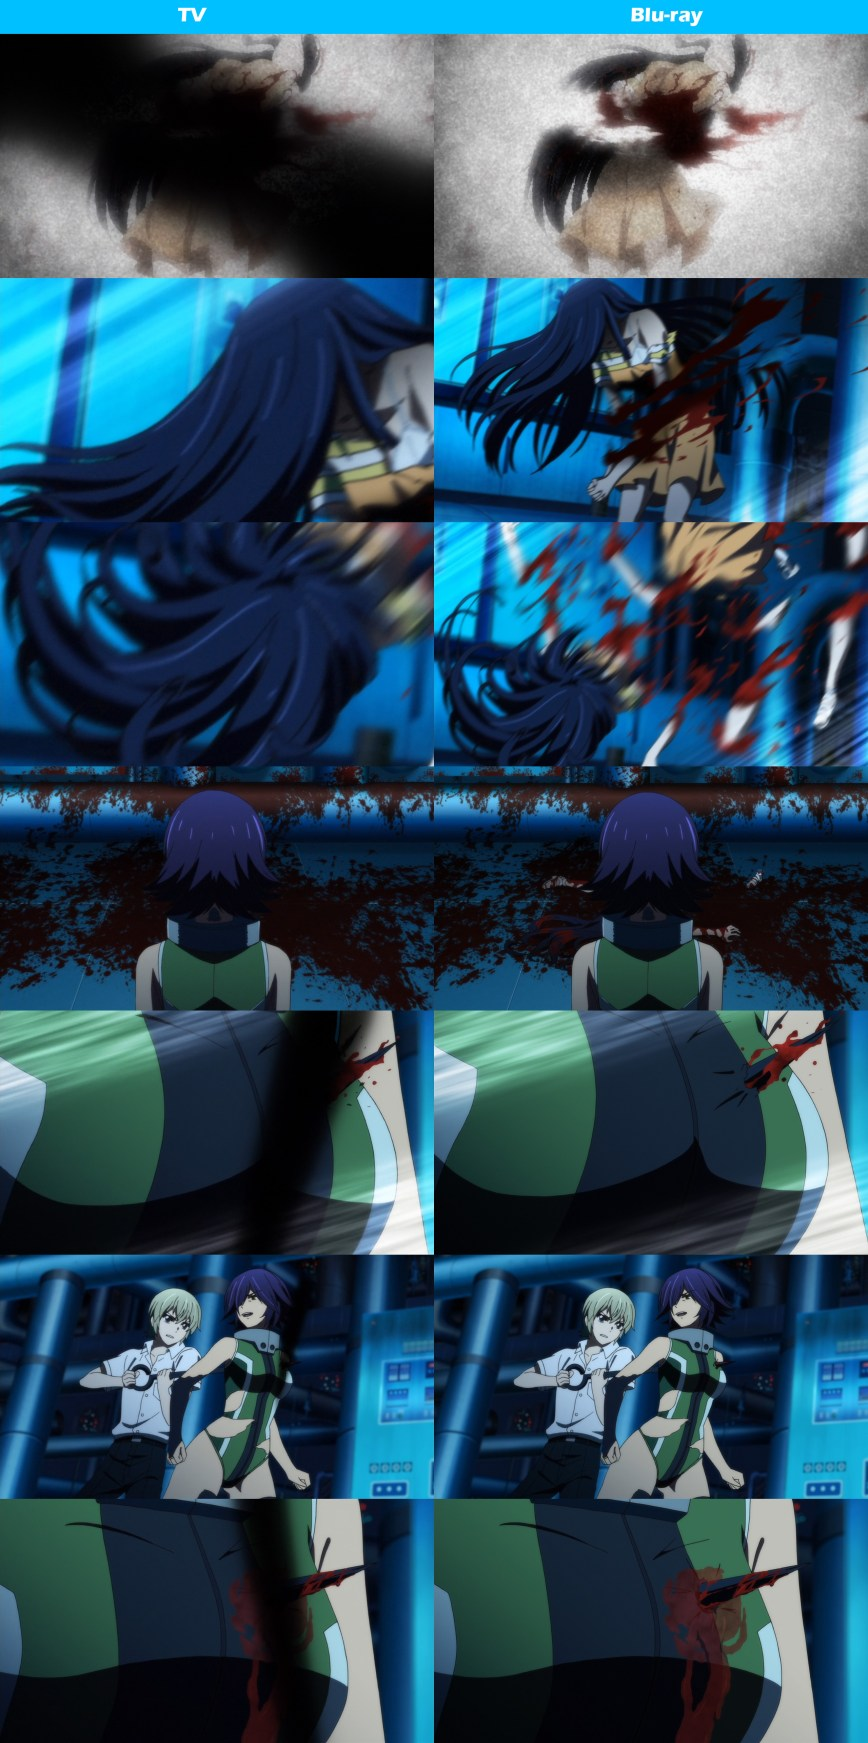 Gokukoku-no-Brynhildr-TV-and-Blu-ray-Comparisons-Gore-1